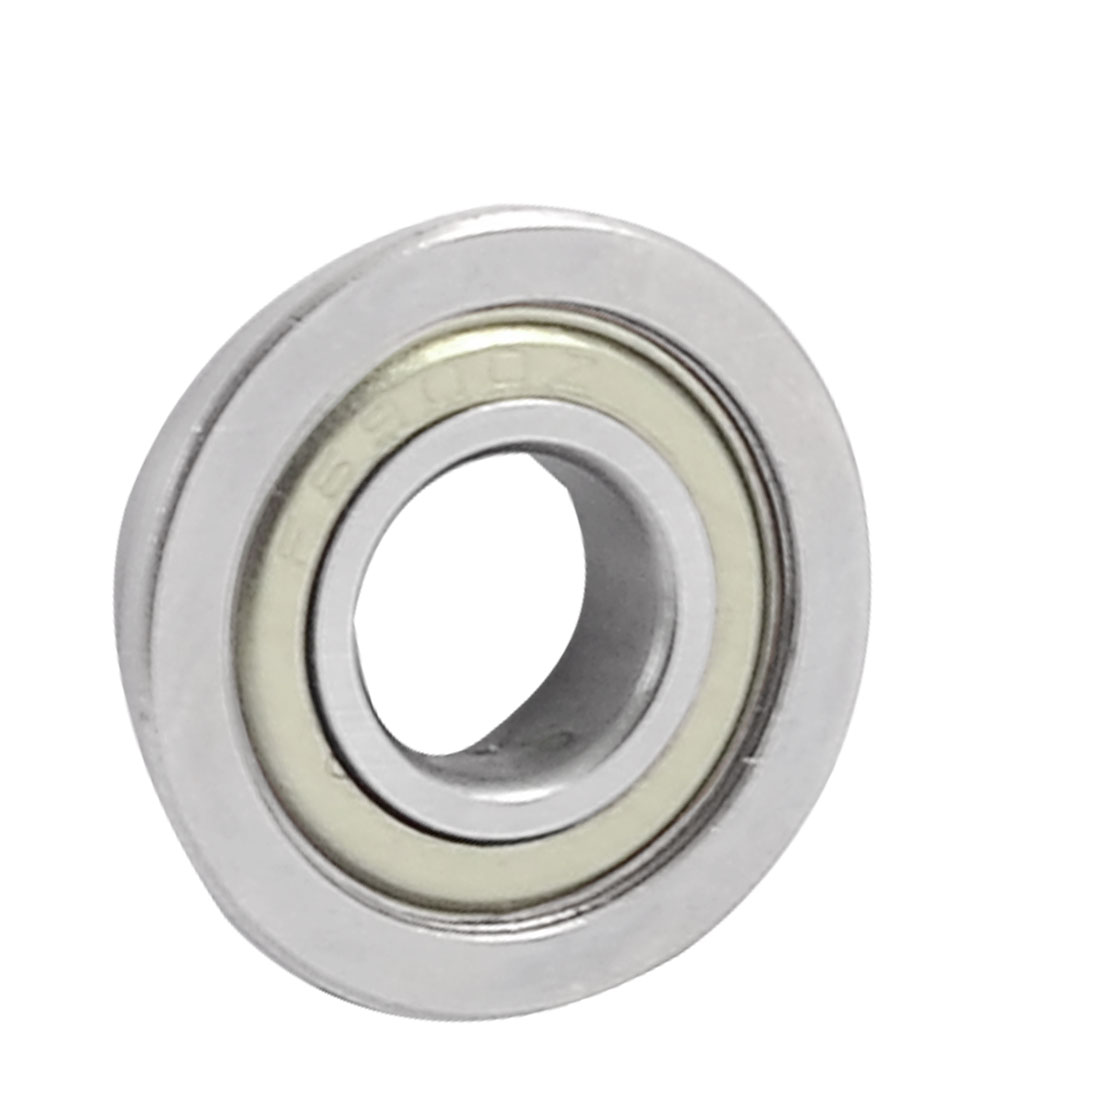 22mm x 10mm x 6mm Silver Tone Metal Shields Deep Groove Flanged Ball Bearing